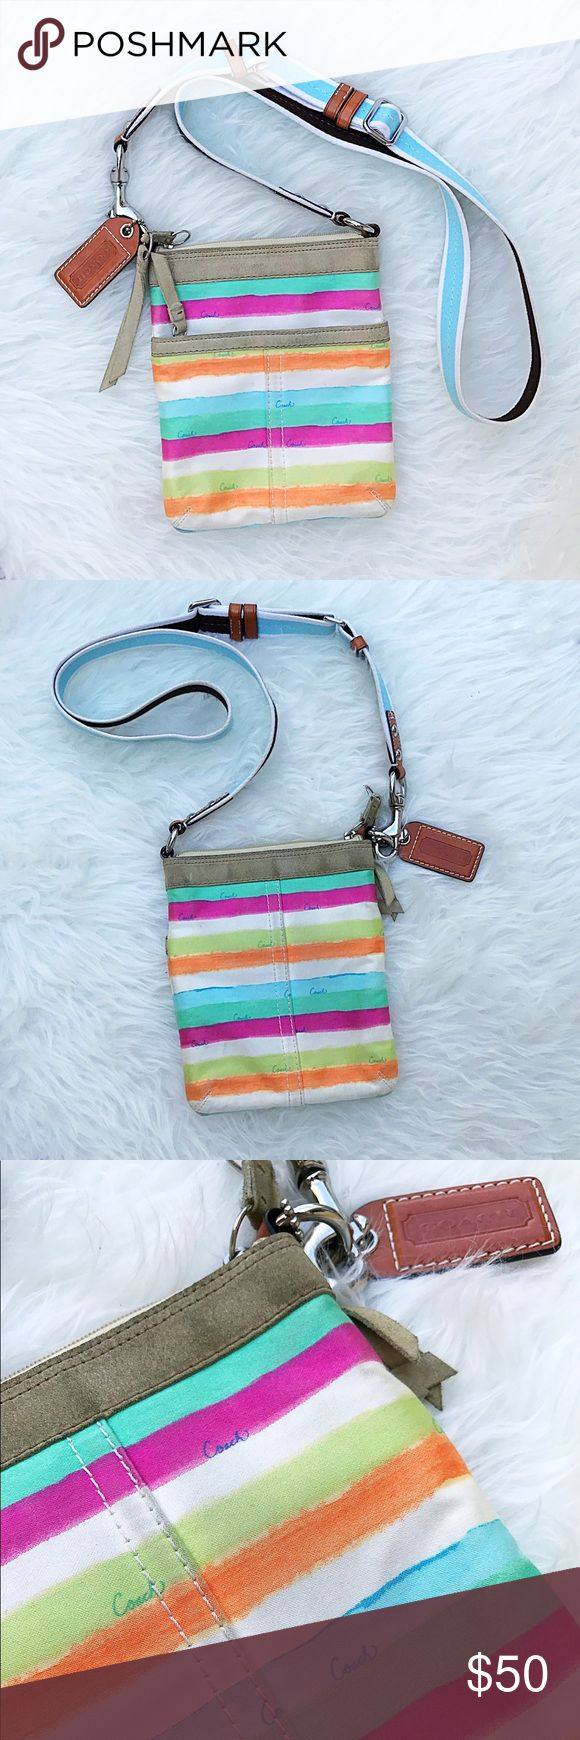 Coach Swingpack No. M0751-F10718- Watercolor Coach Crossbody Swingpack No. M0751-F10718- Watercolor. This bag features cotton multi colored stripes with 'Coach' Print (COLORS: GREEN, ORANGE, PINK, LIGHT BLUE, LEMON, WHITE). This bag features a Canvas body, Blue/White adjustable strap with silver hardware and Brown Leather Accents, Front Zip Pocket with Suede pull strap, Zip top closure, Camel suede trim, Blue satin interior lining, white leather creed, and Brown Leather Logo Tag…